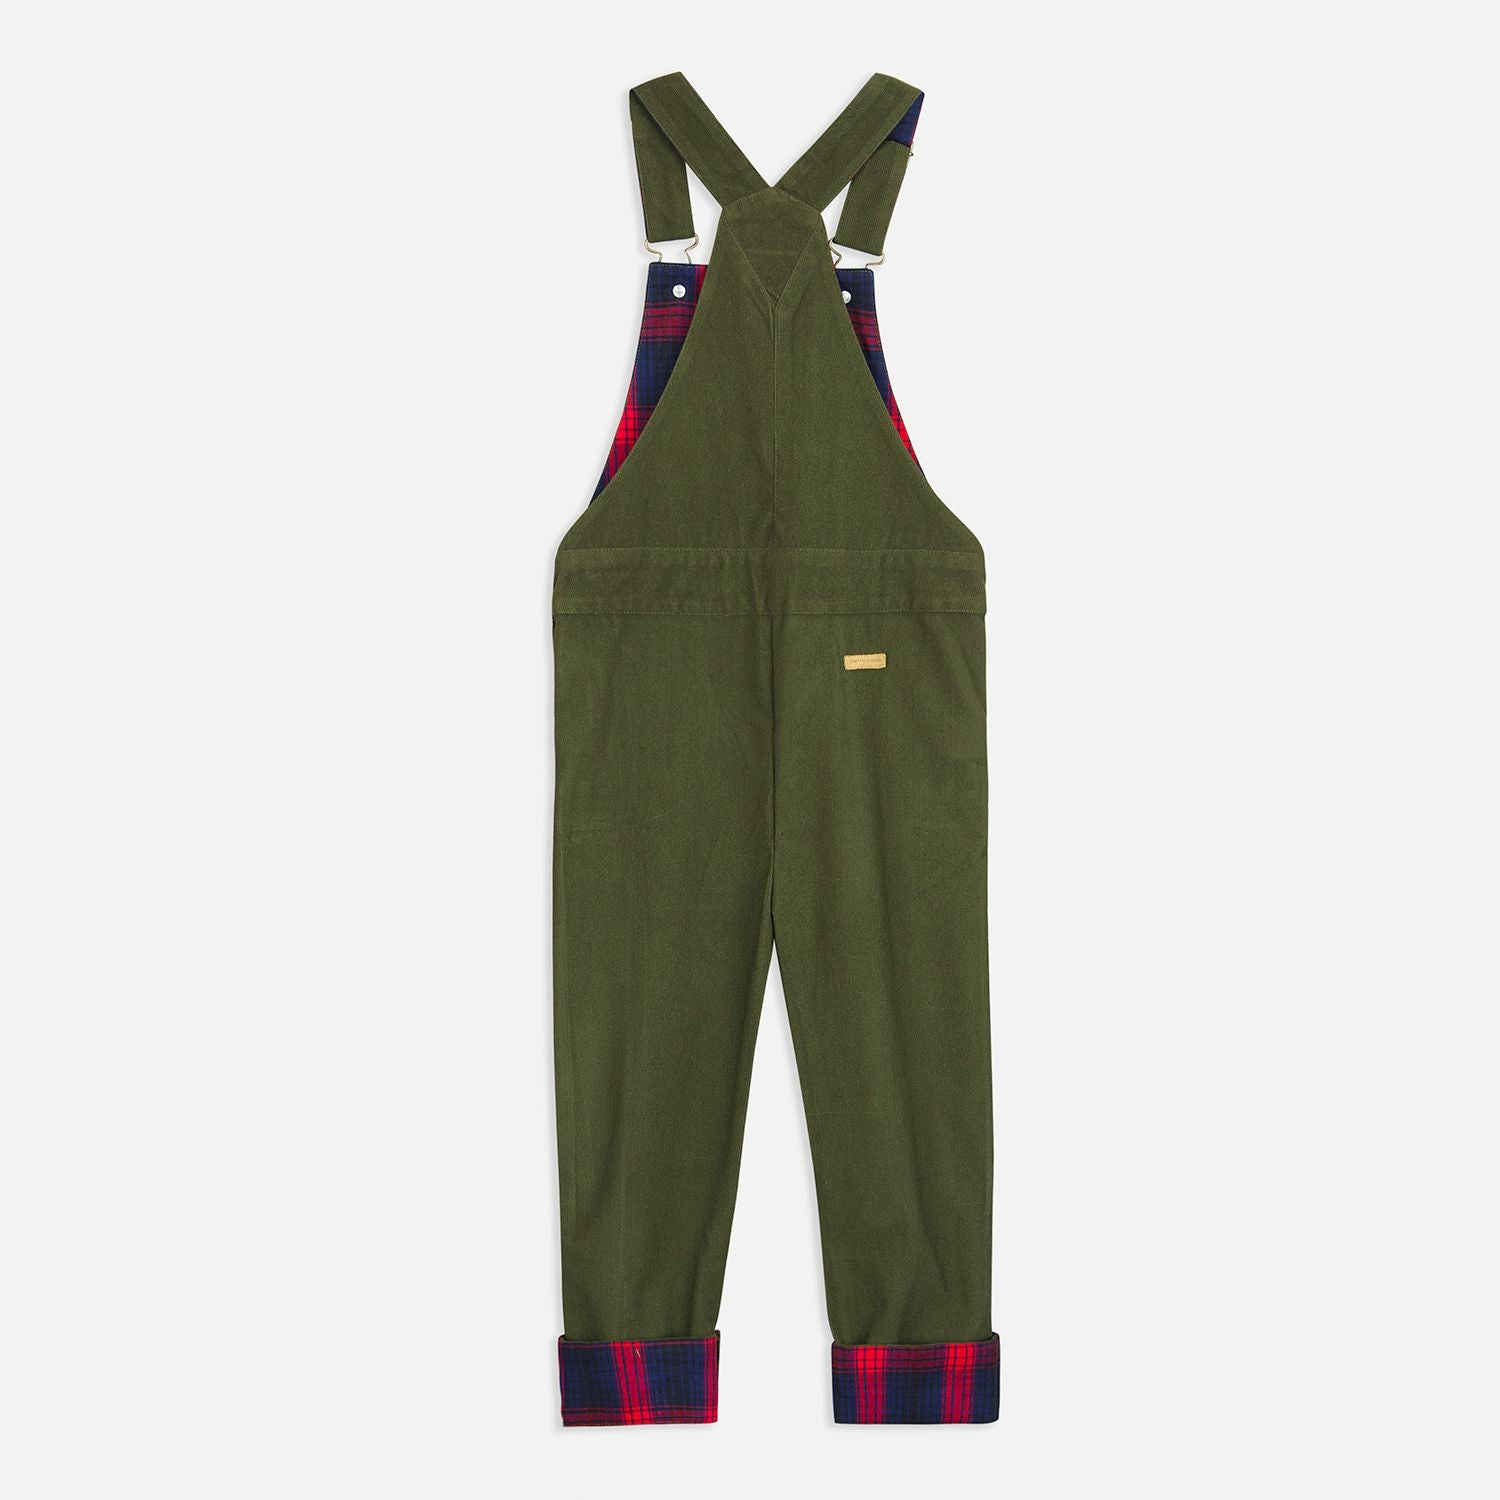 Corduroy Dungaree for kids